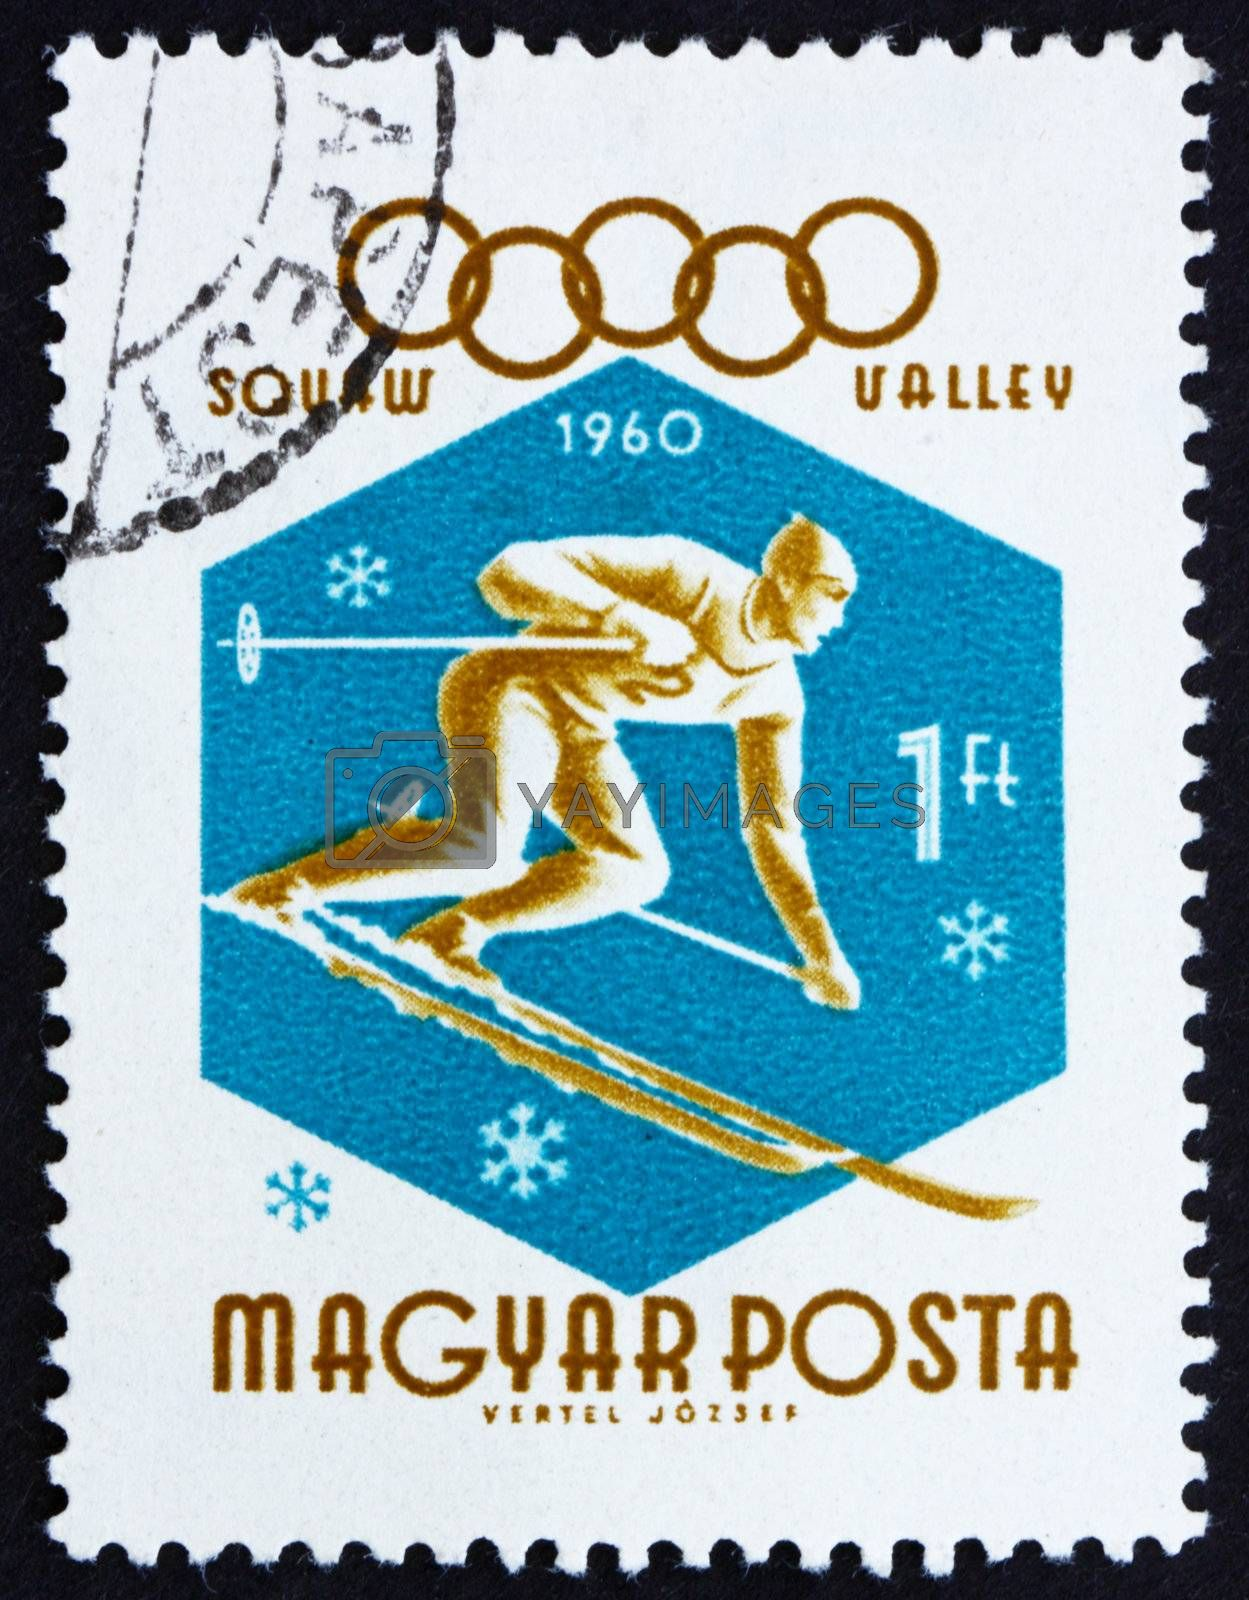 HUNGARY - CIRCA 1960: a stamp printed in the Hungary shows Downhill Skier, Winter Olympic sports, Squaw Valley 60, circa 1960